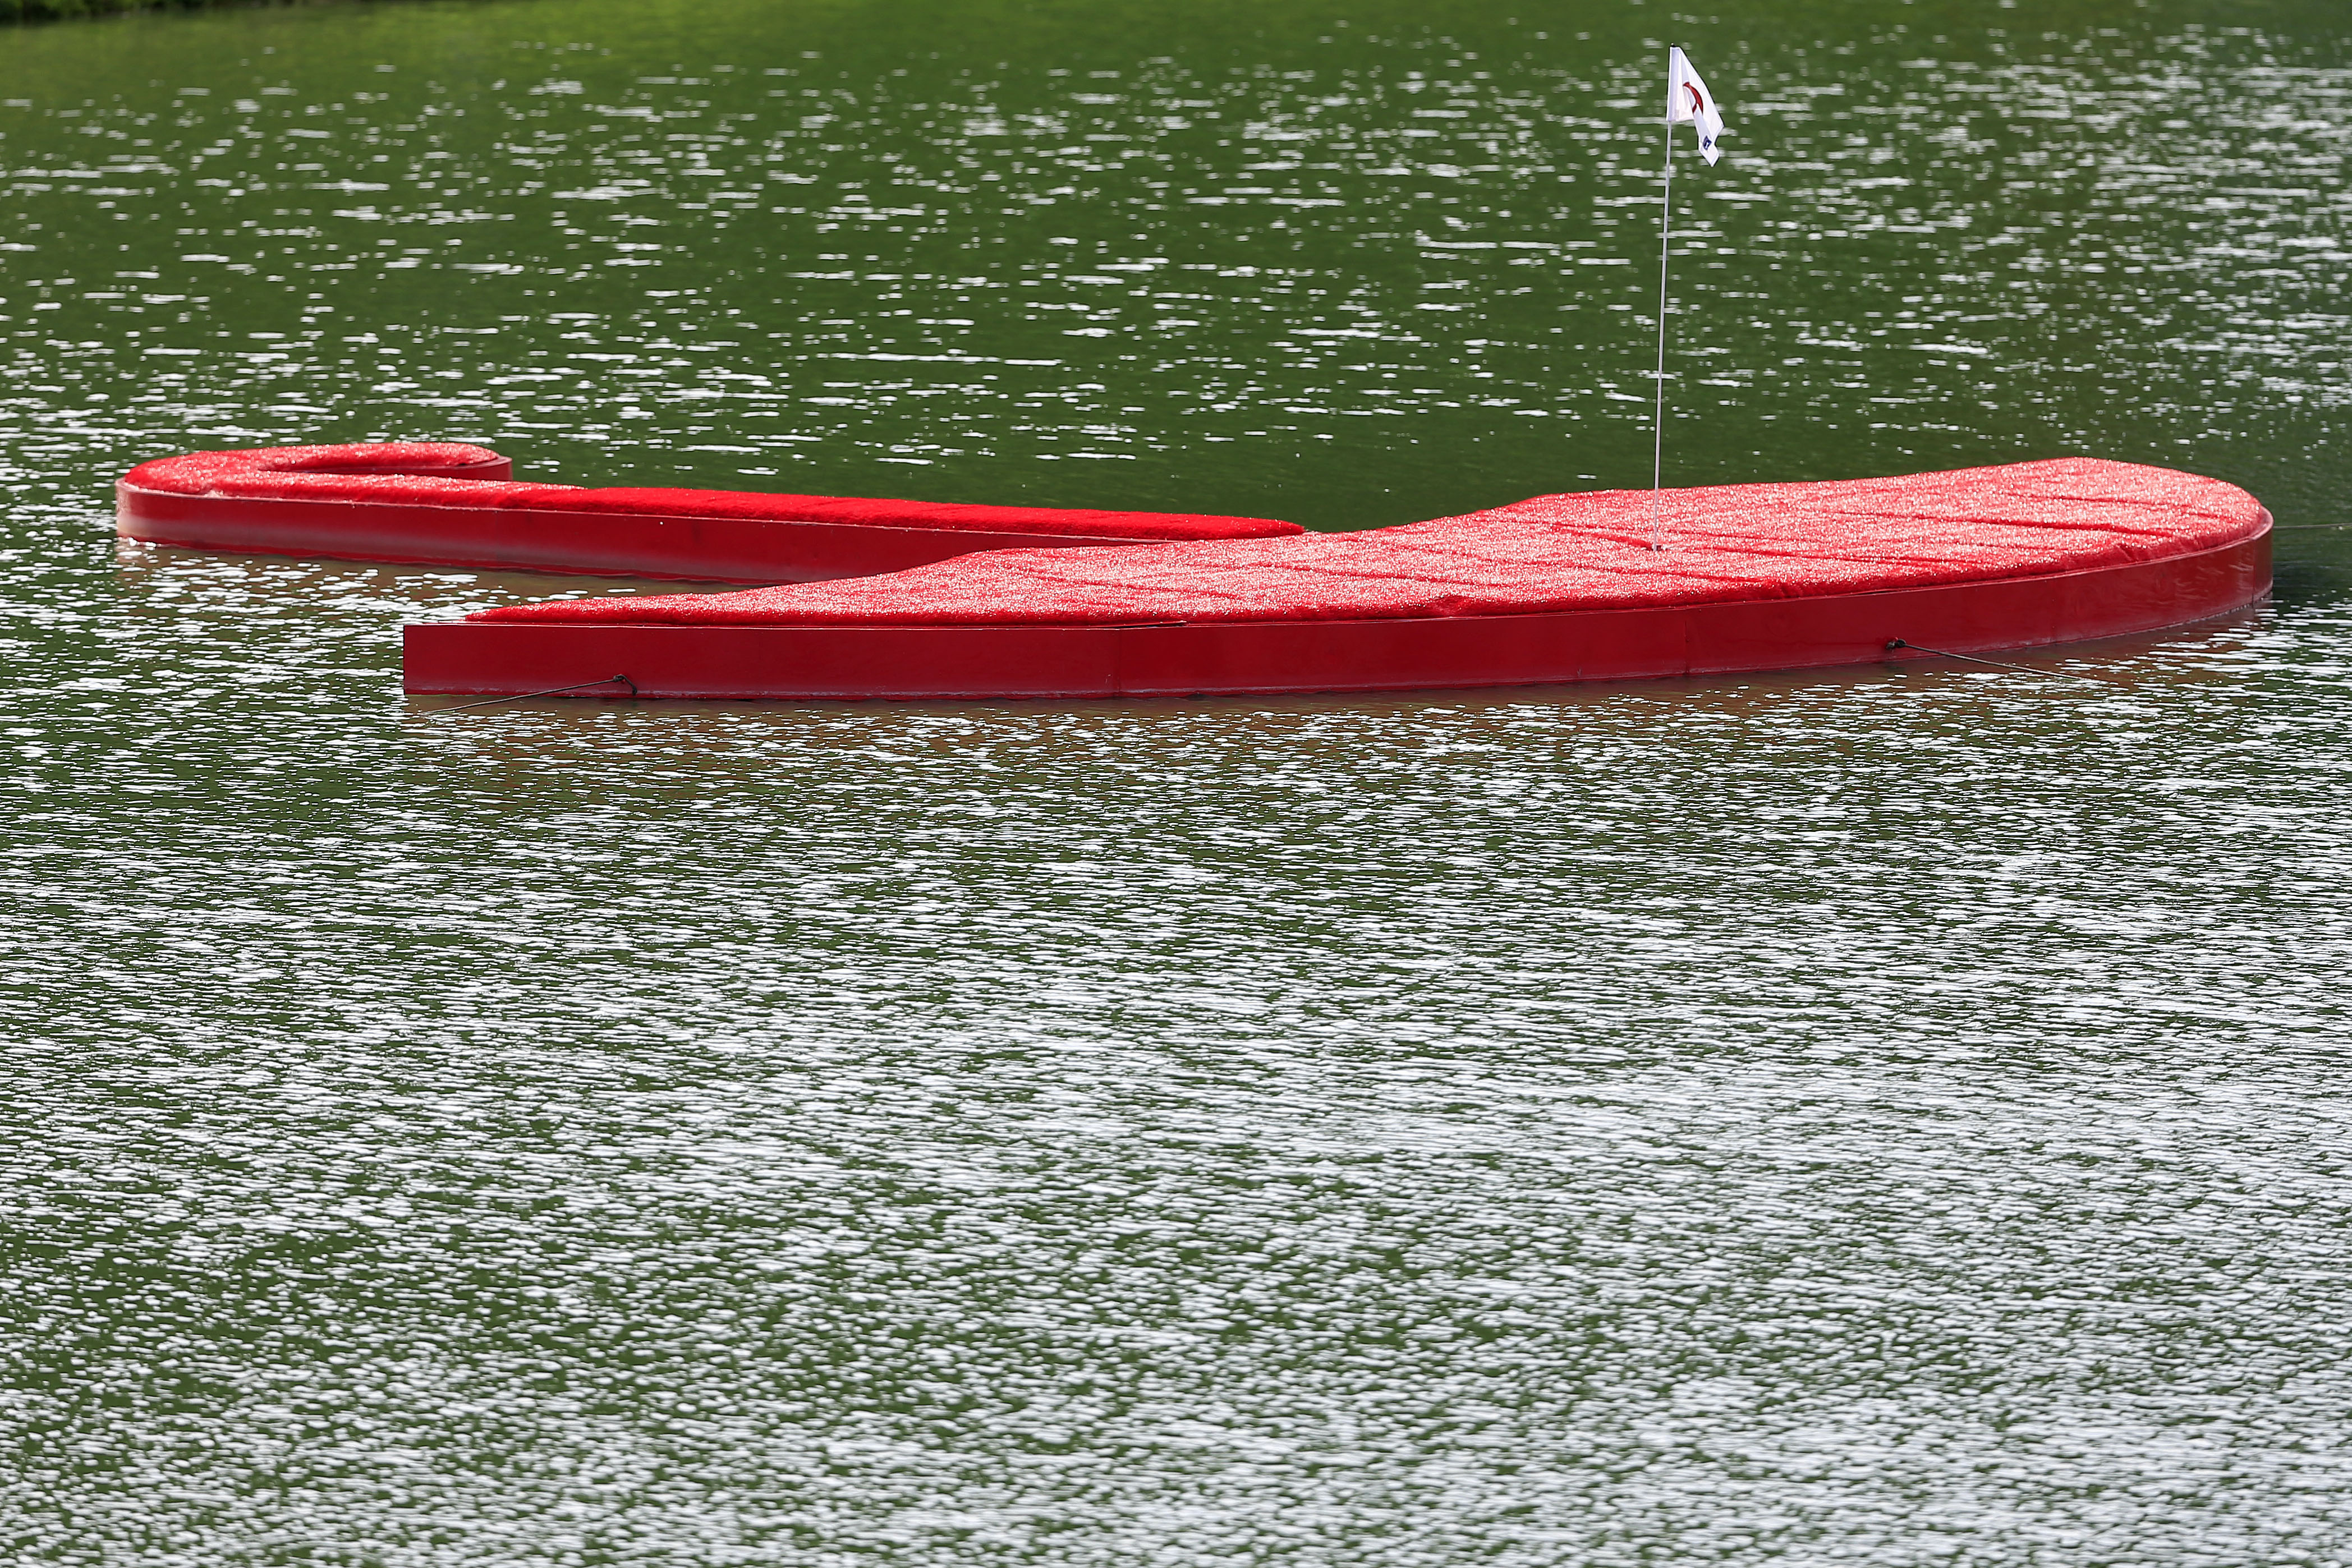 Hey, Pete Dye: Now THAT is an island green